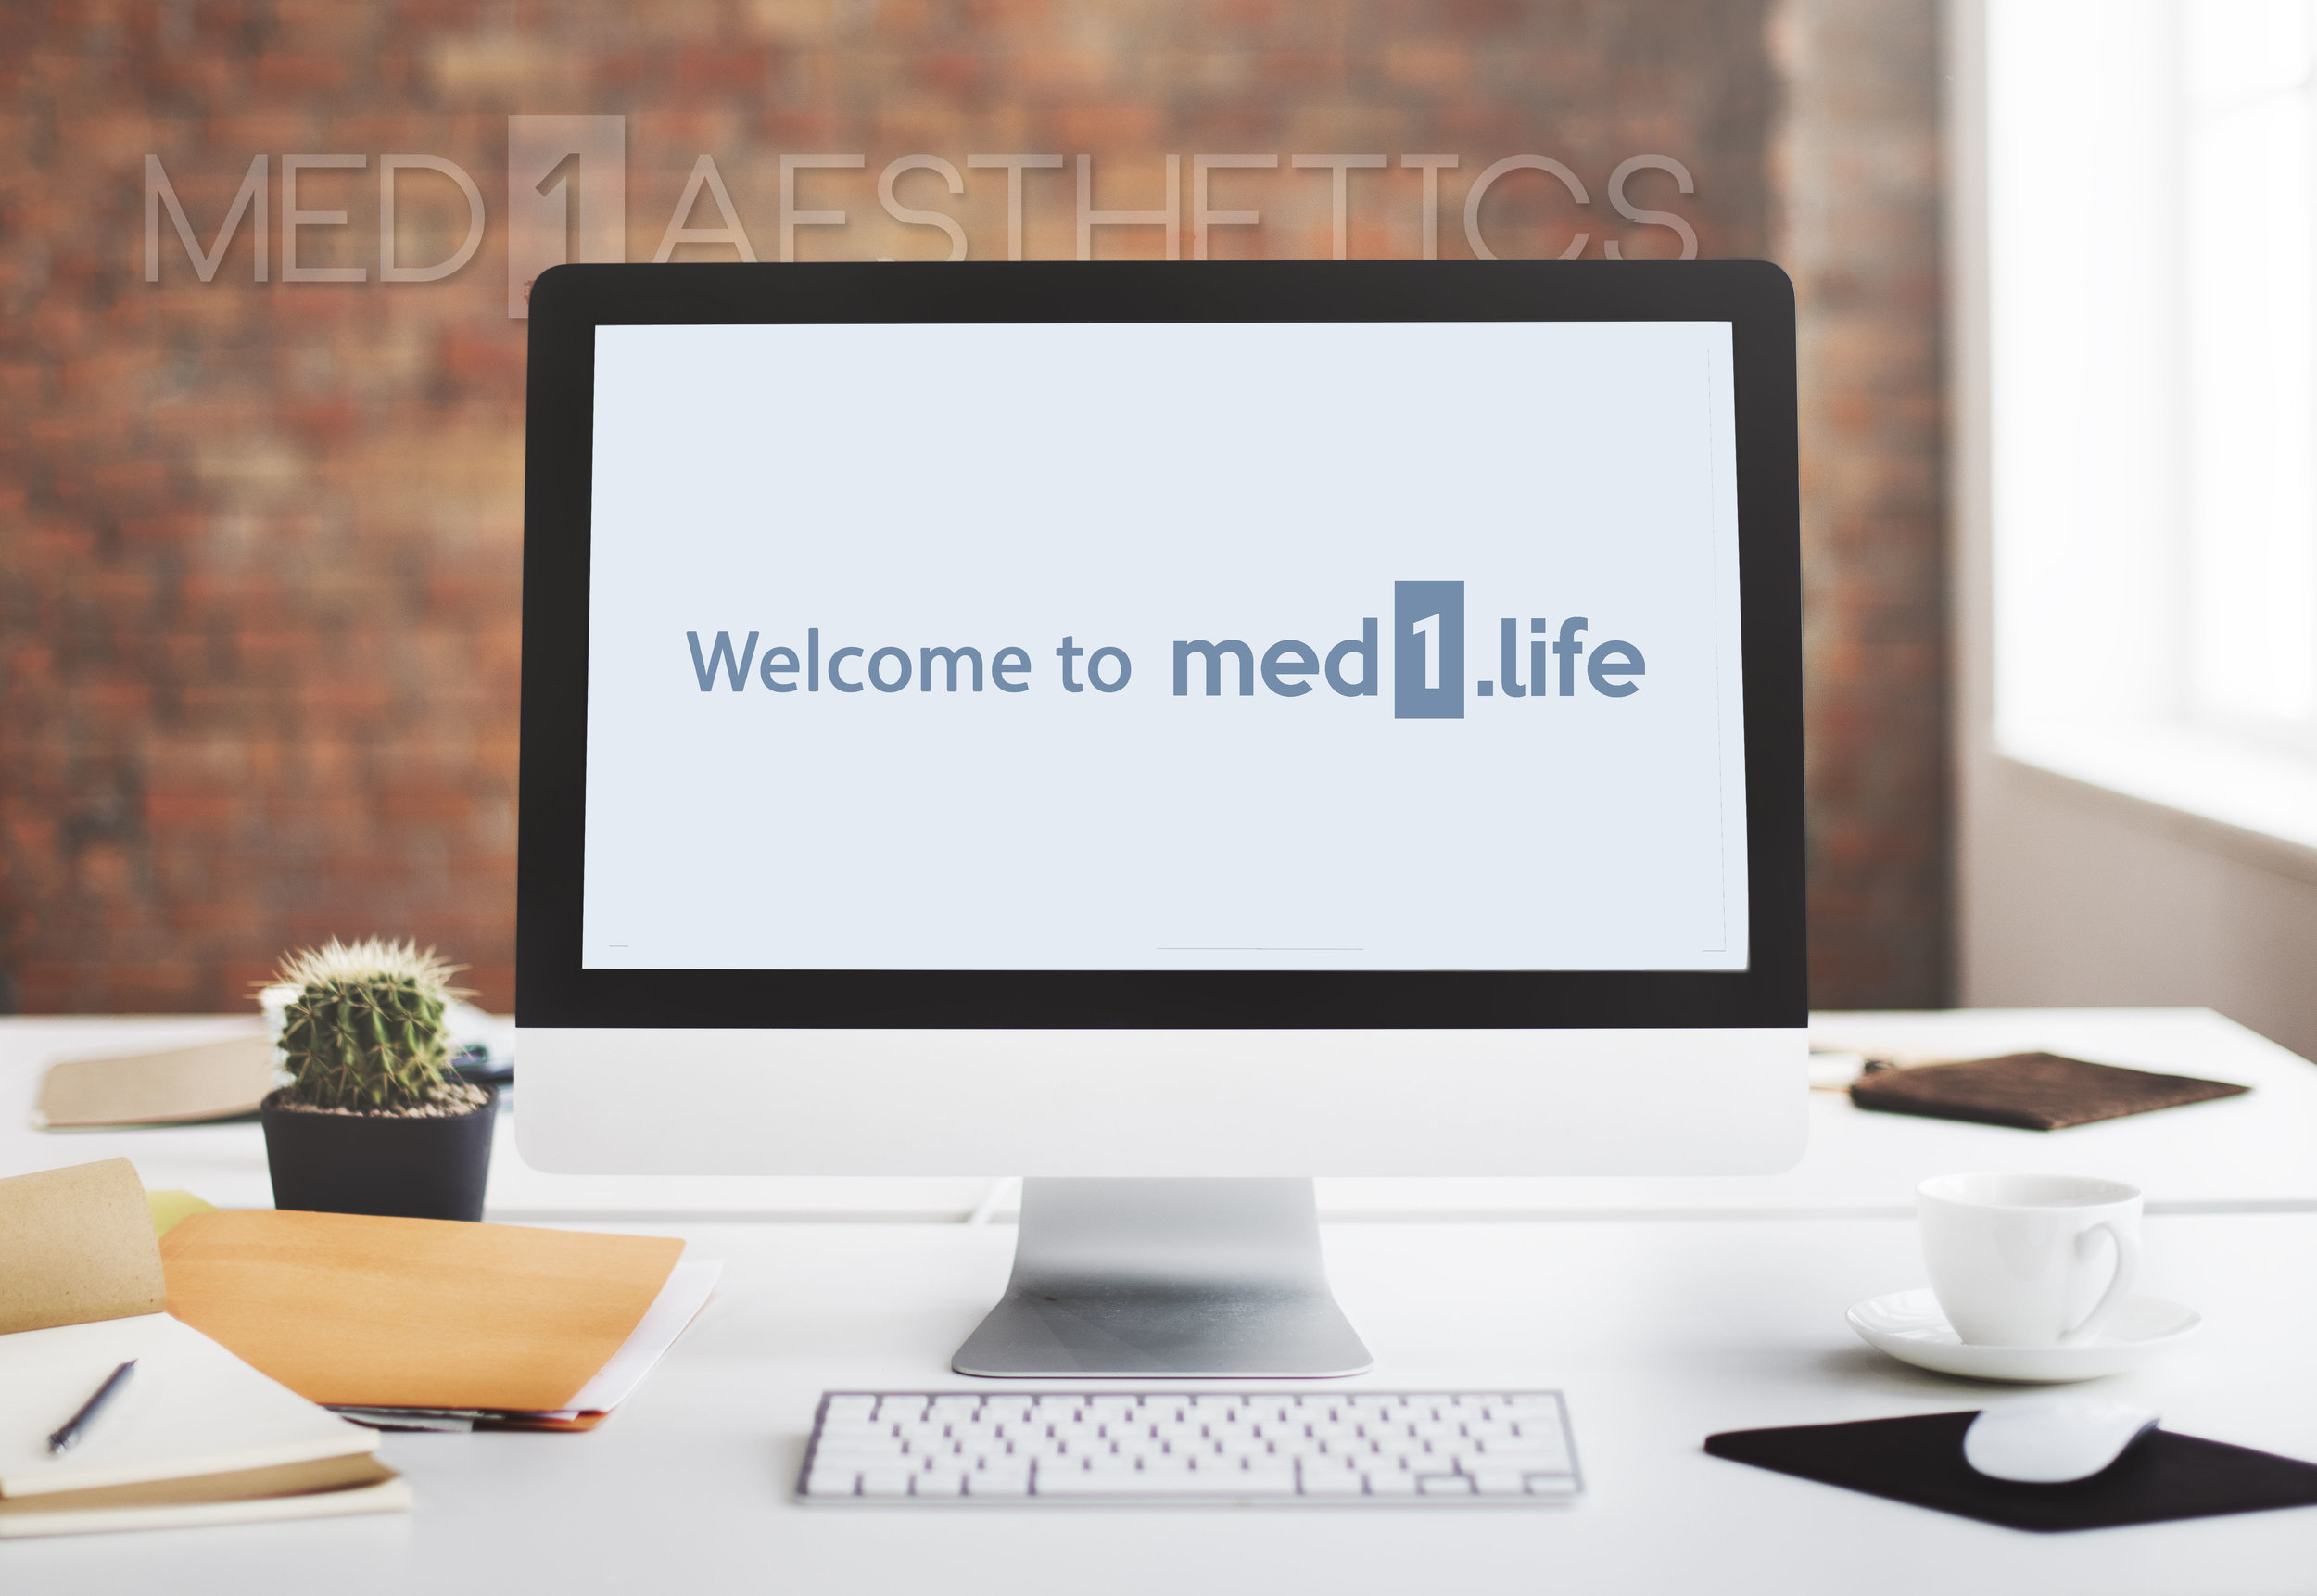 welcome to med1.life computer image.jpg